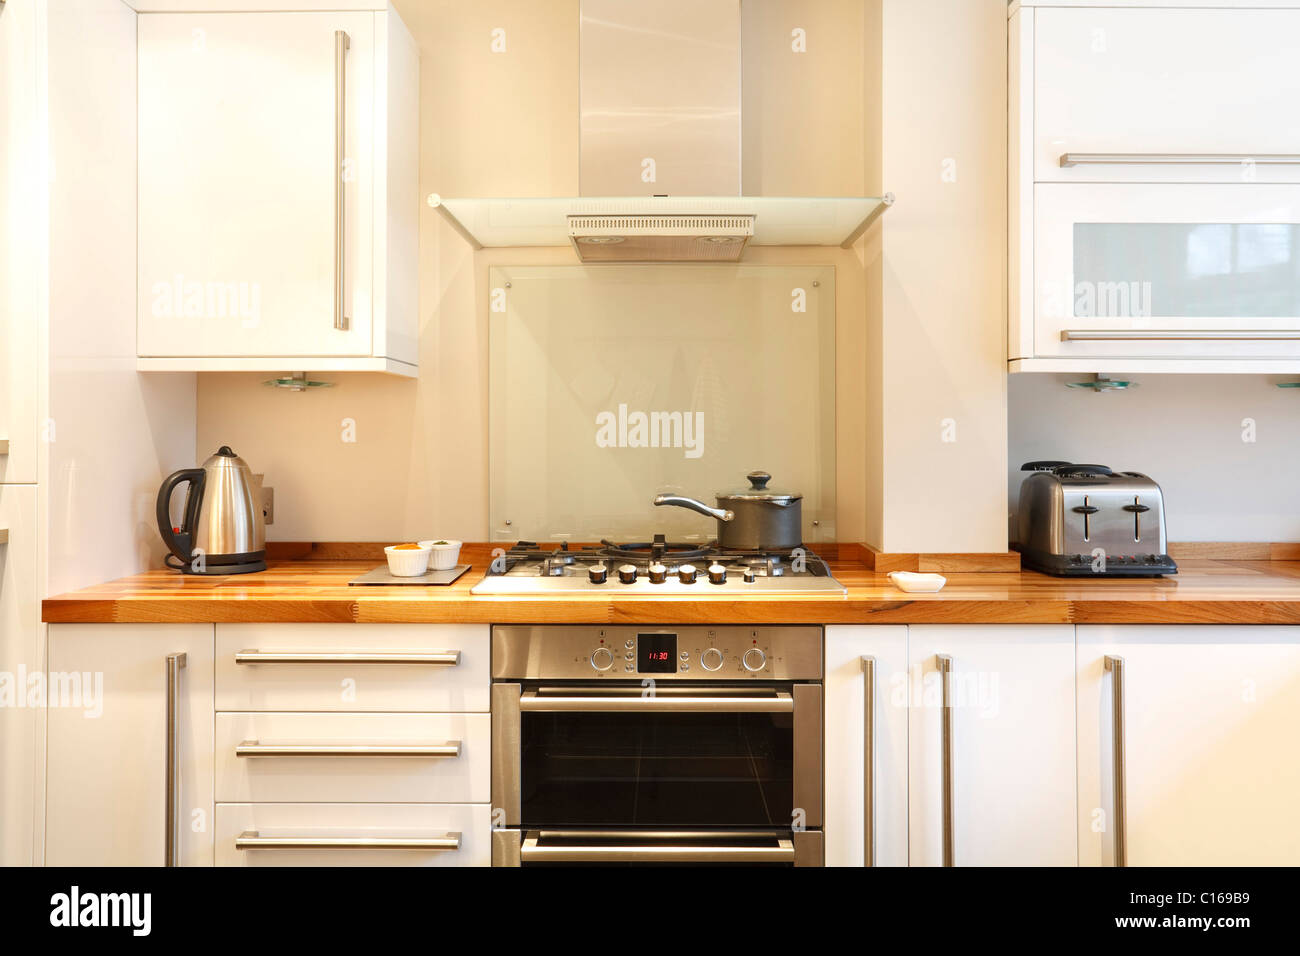 modern kitchen with a gas hob chimney hood wooden